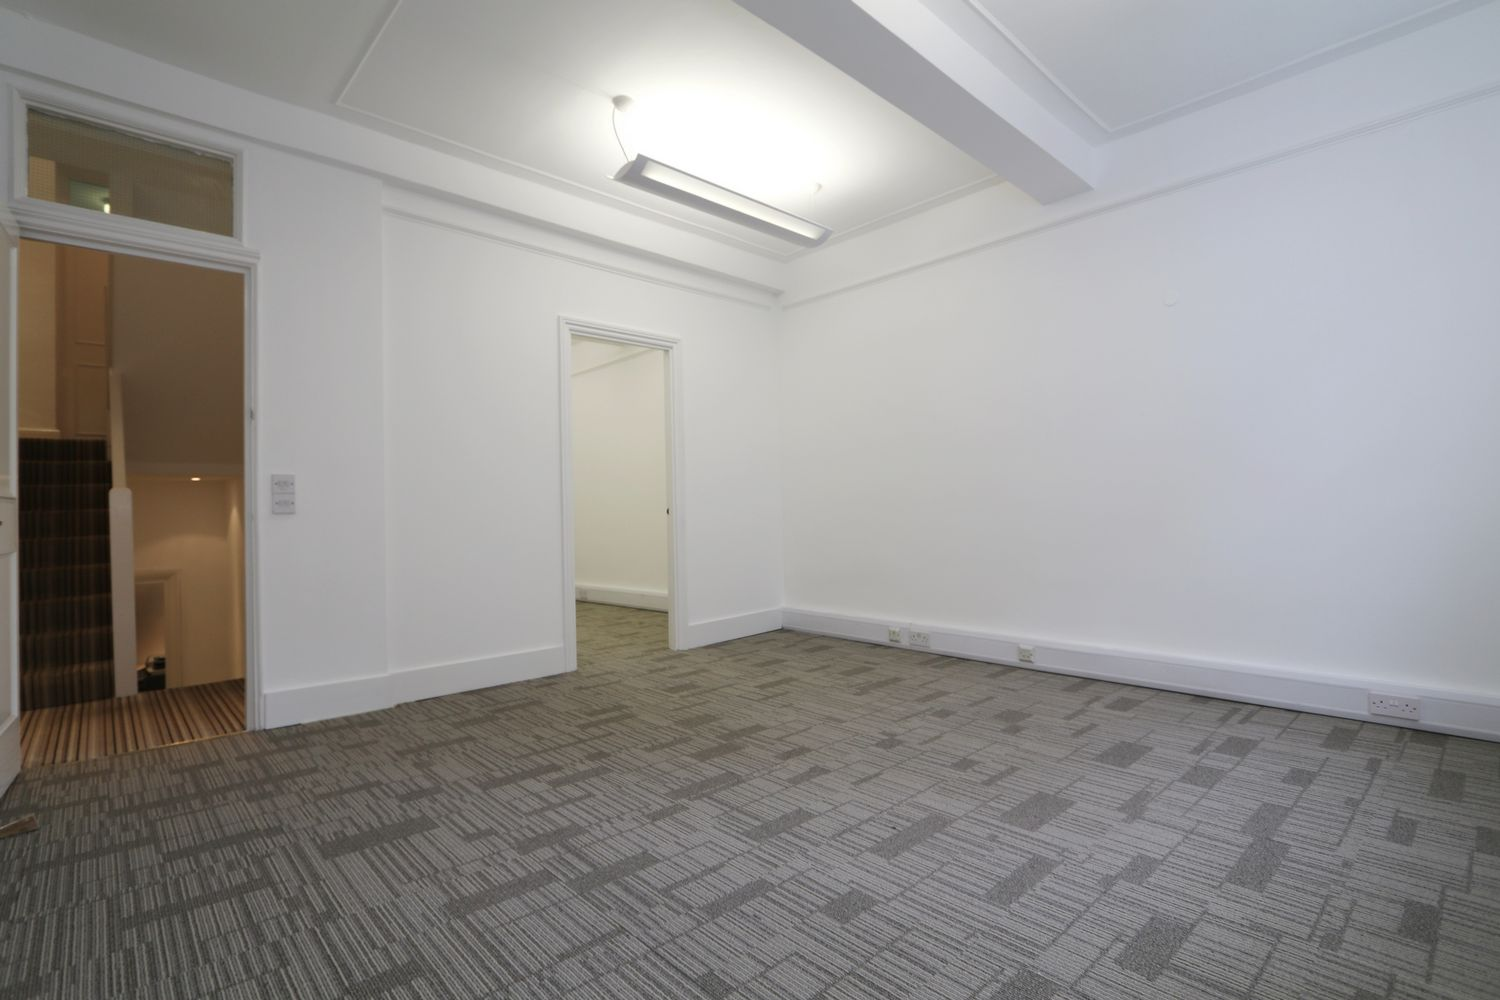 Commercial Property To Rent In Clerkenwell L2L154-3657